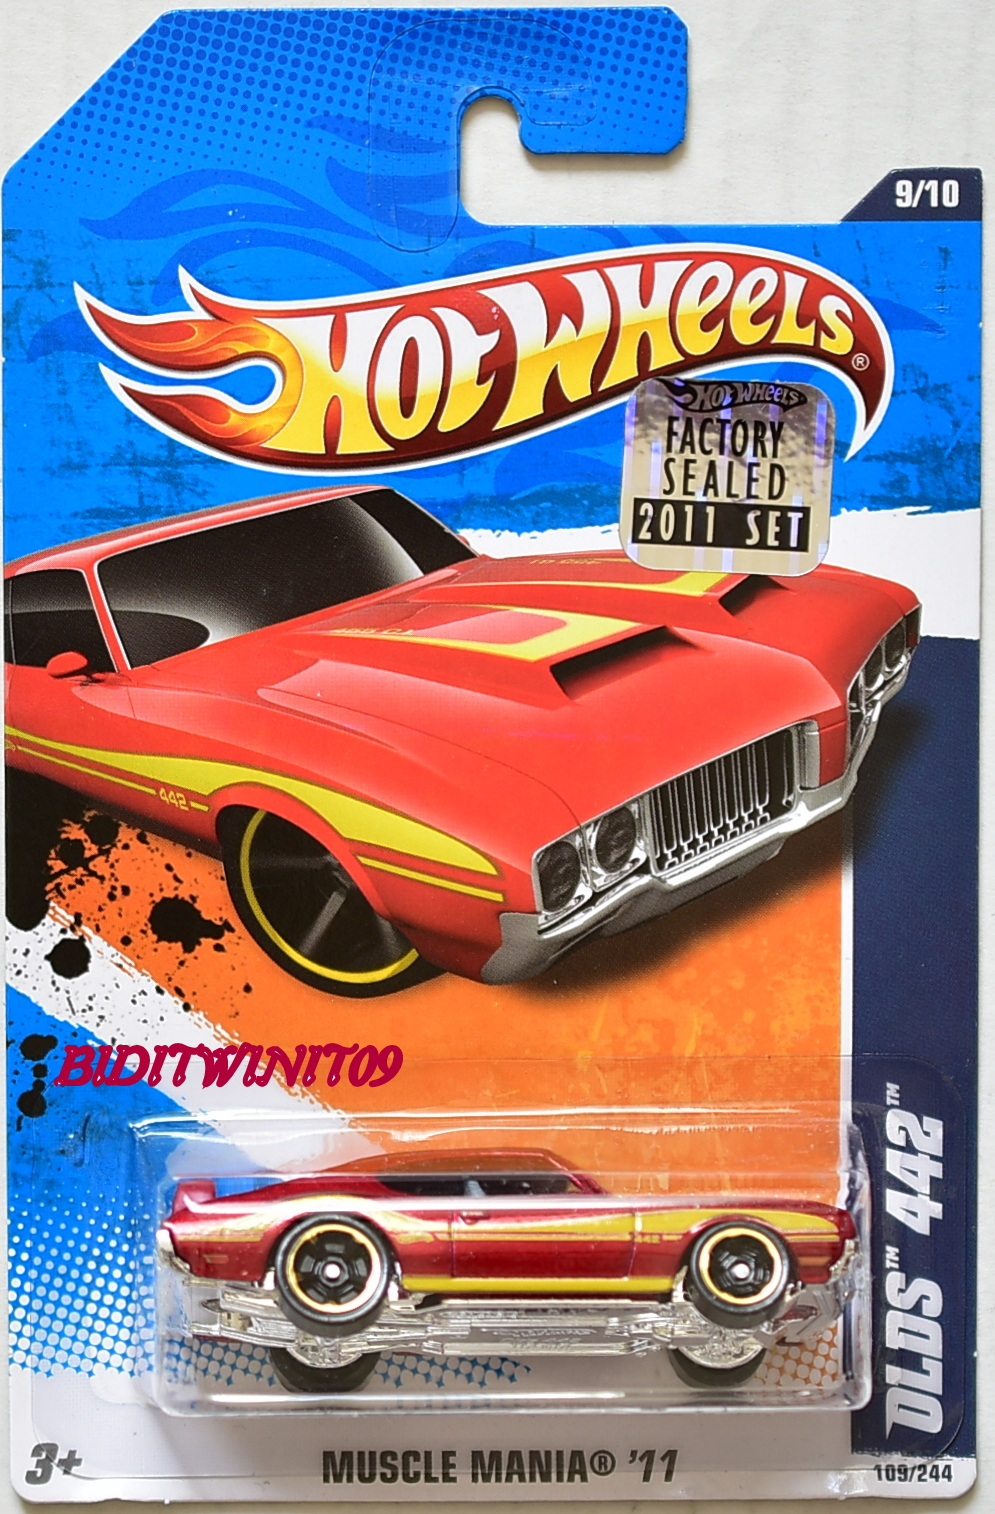 HOT WHEELS 2011 MUSCLE MANIA OLDS 442 #9/10 RED FACTORY SEALED